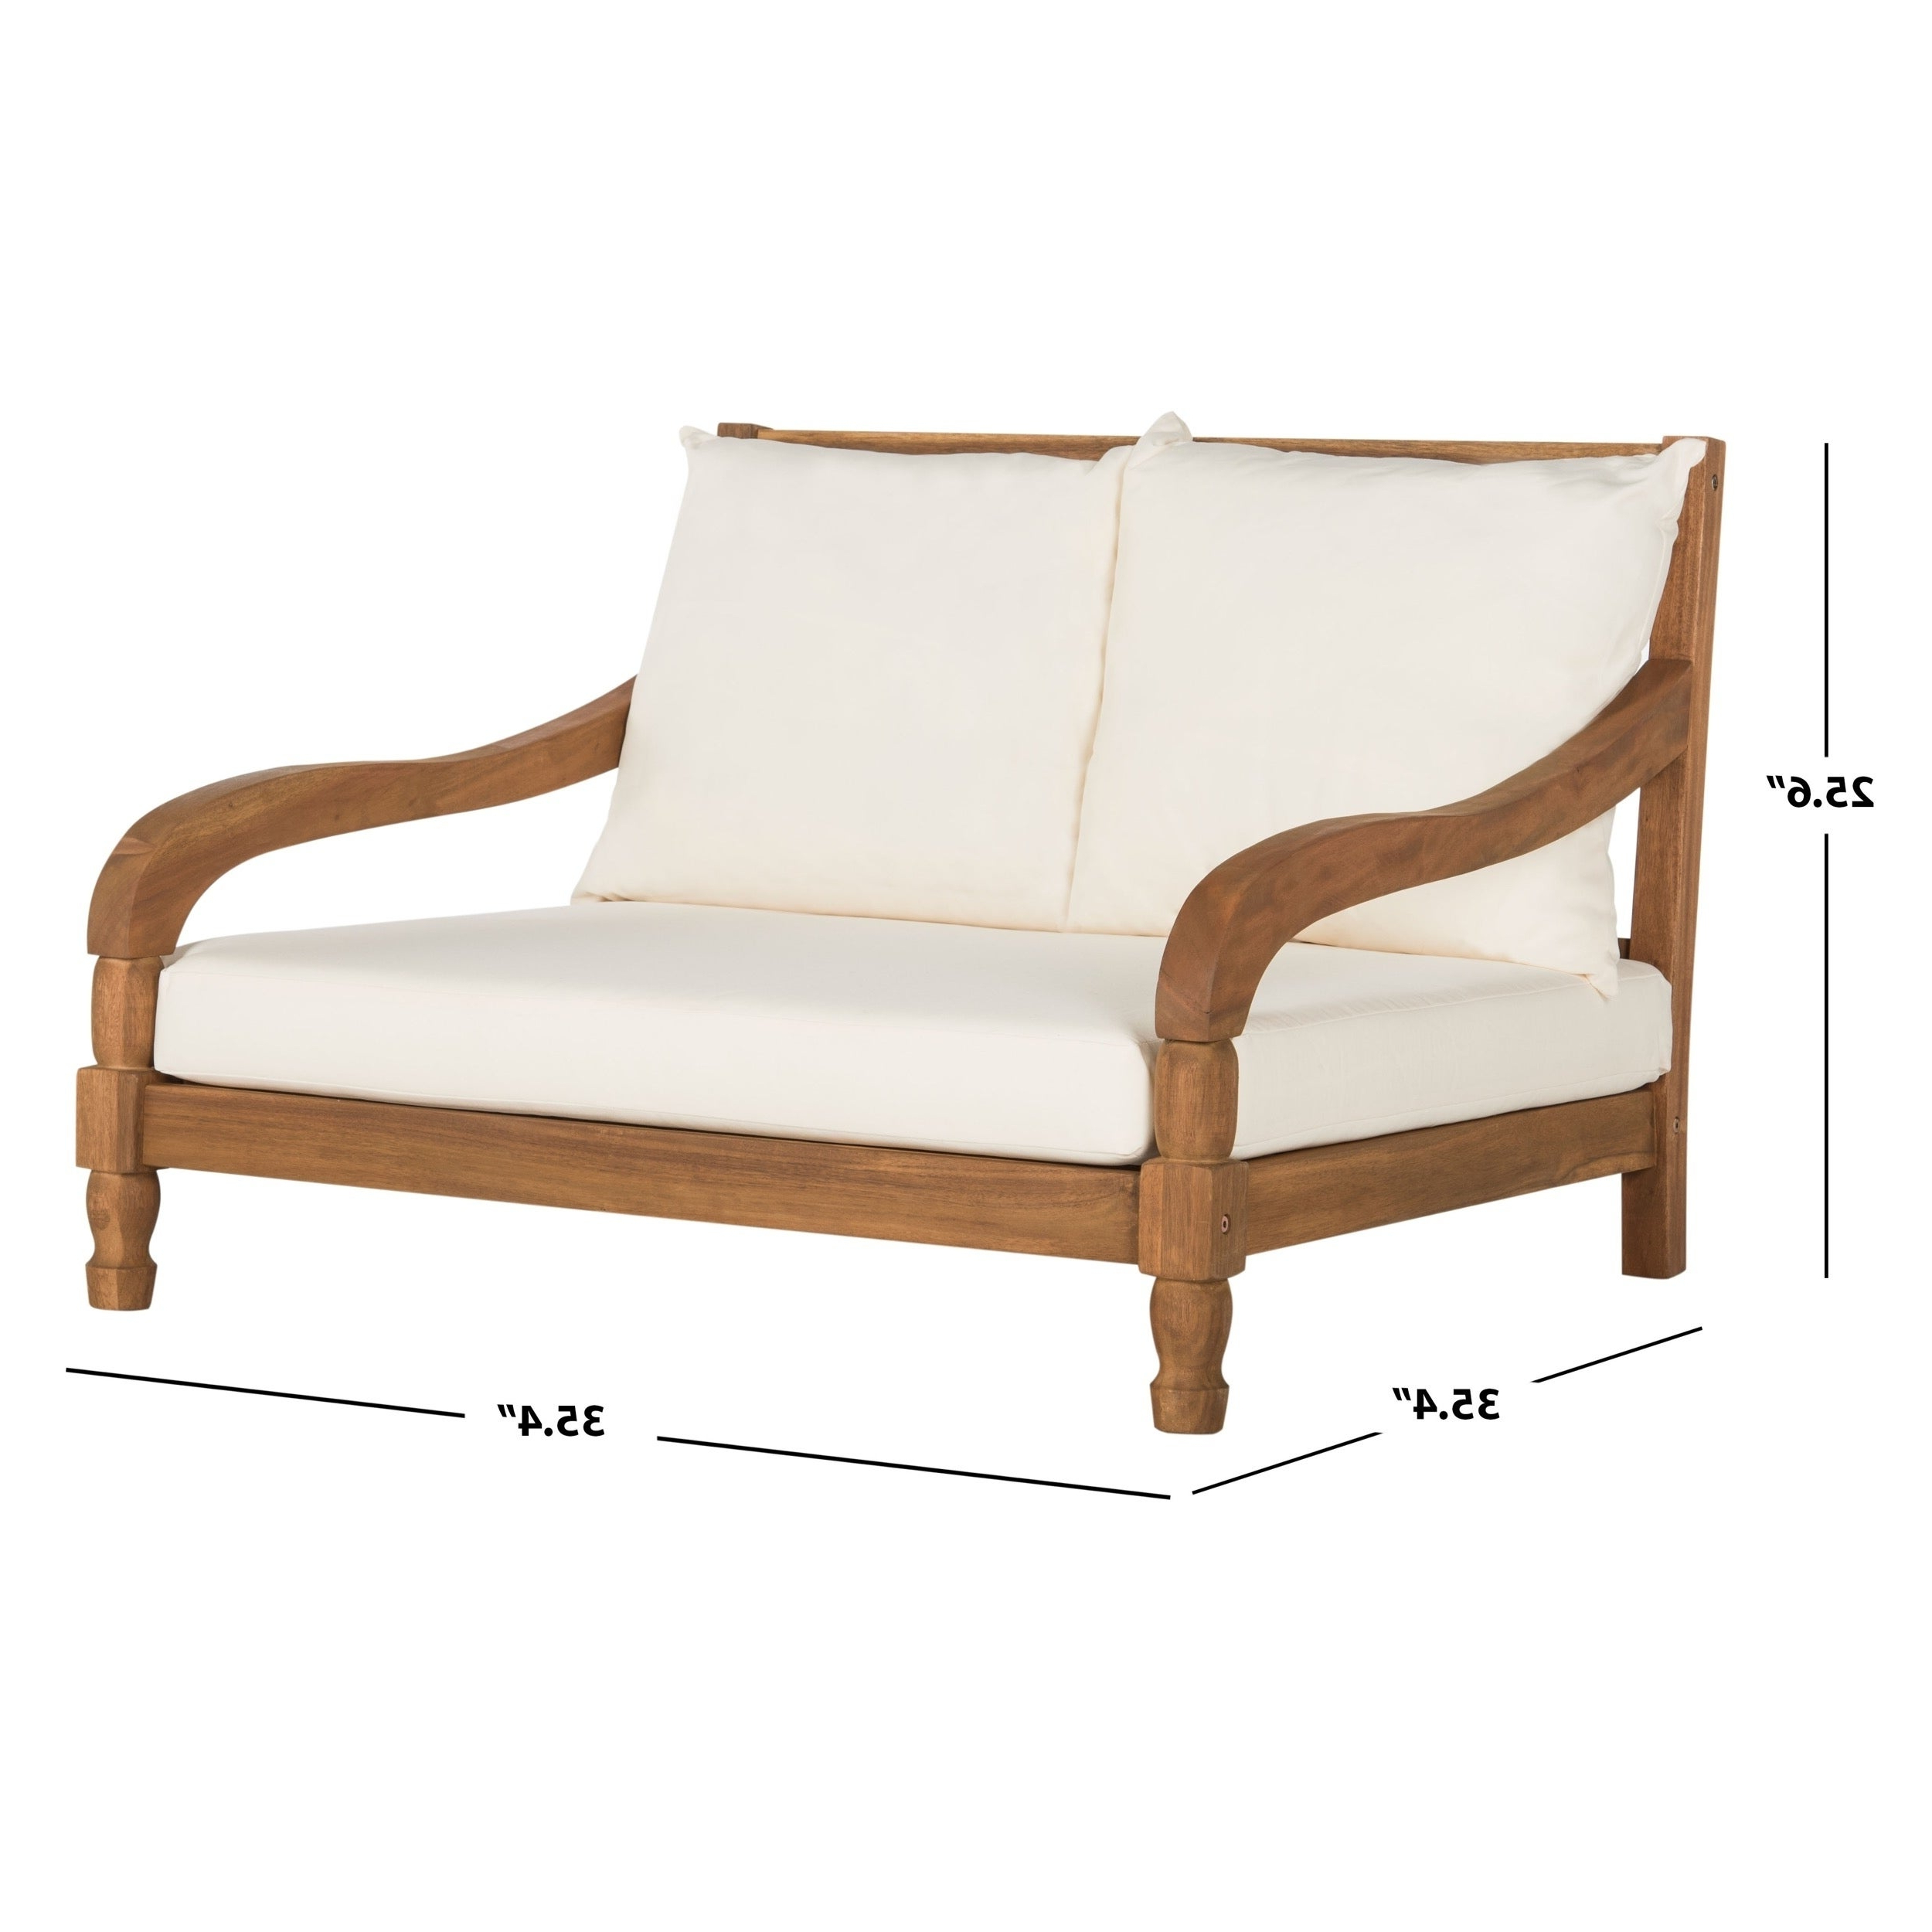 "Outdoor Living Pomona Loungers Inside Latest Safavieh Outdoor Living Pomona Brown/ Beige Lounger – 35.4"" X 35.4"" X  (View 10 of 25)"